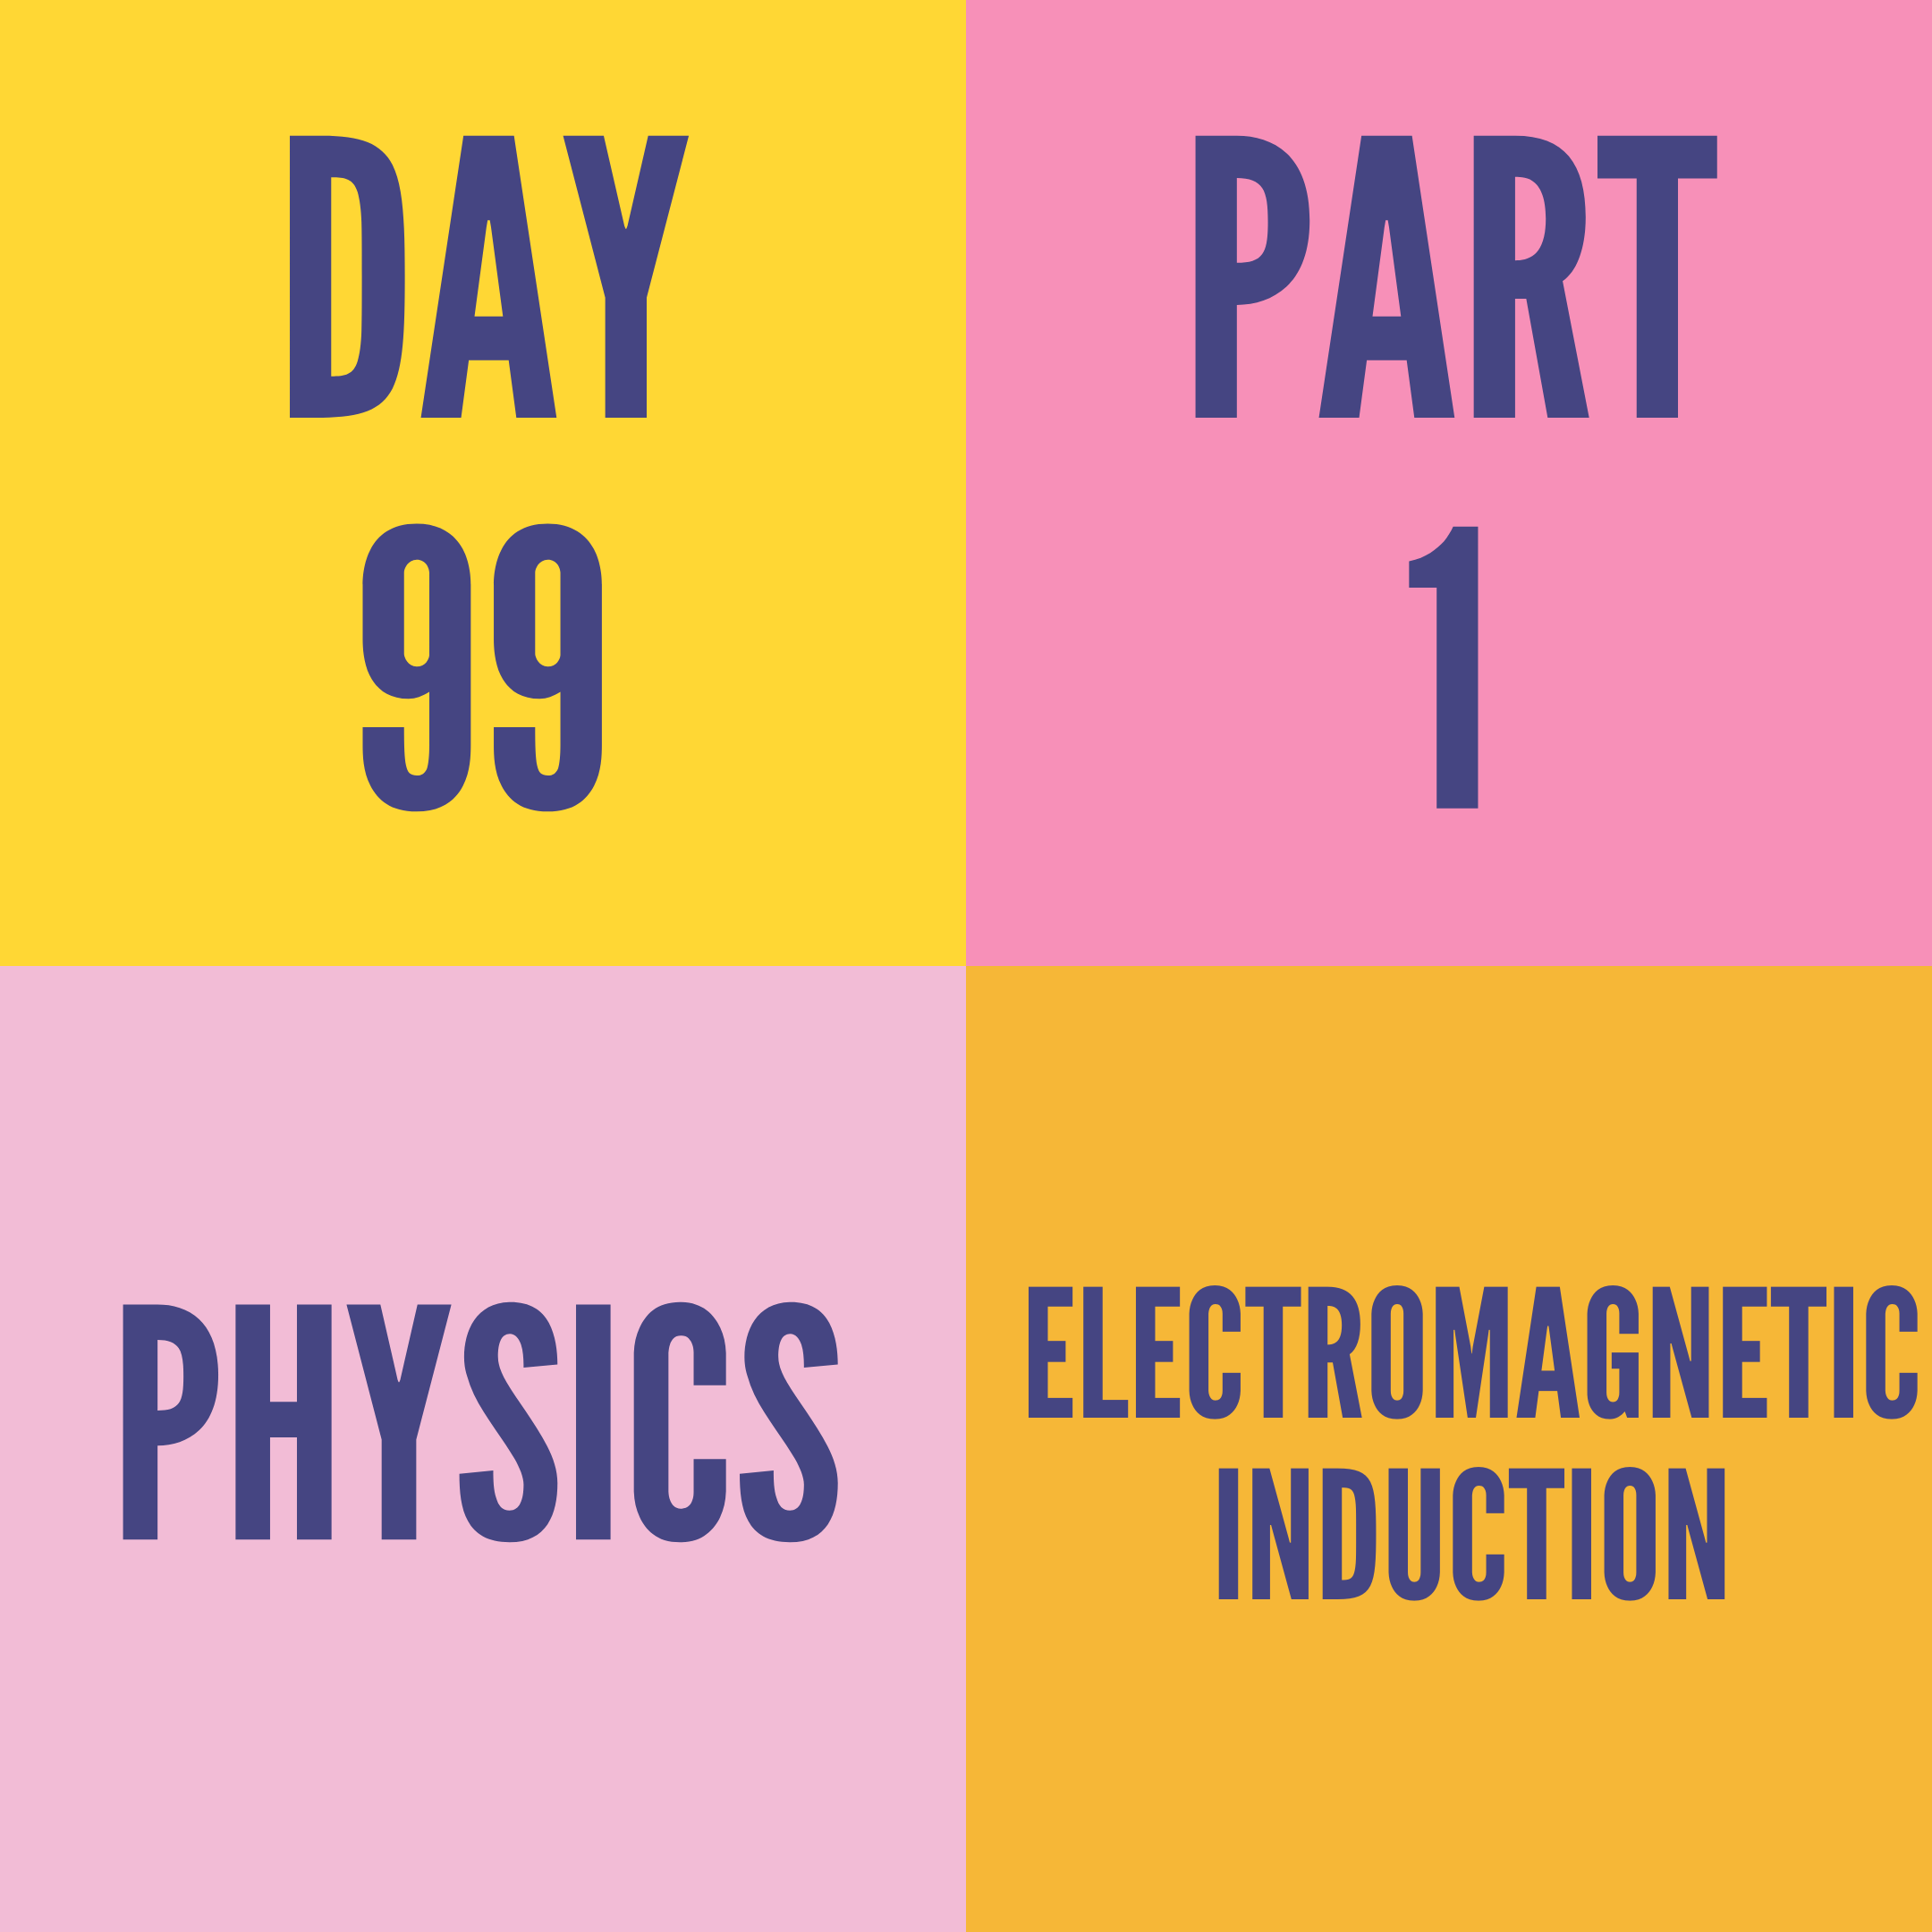 DAY-99 PART-1 ELECTROMAGNETIC INDUCTION